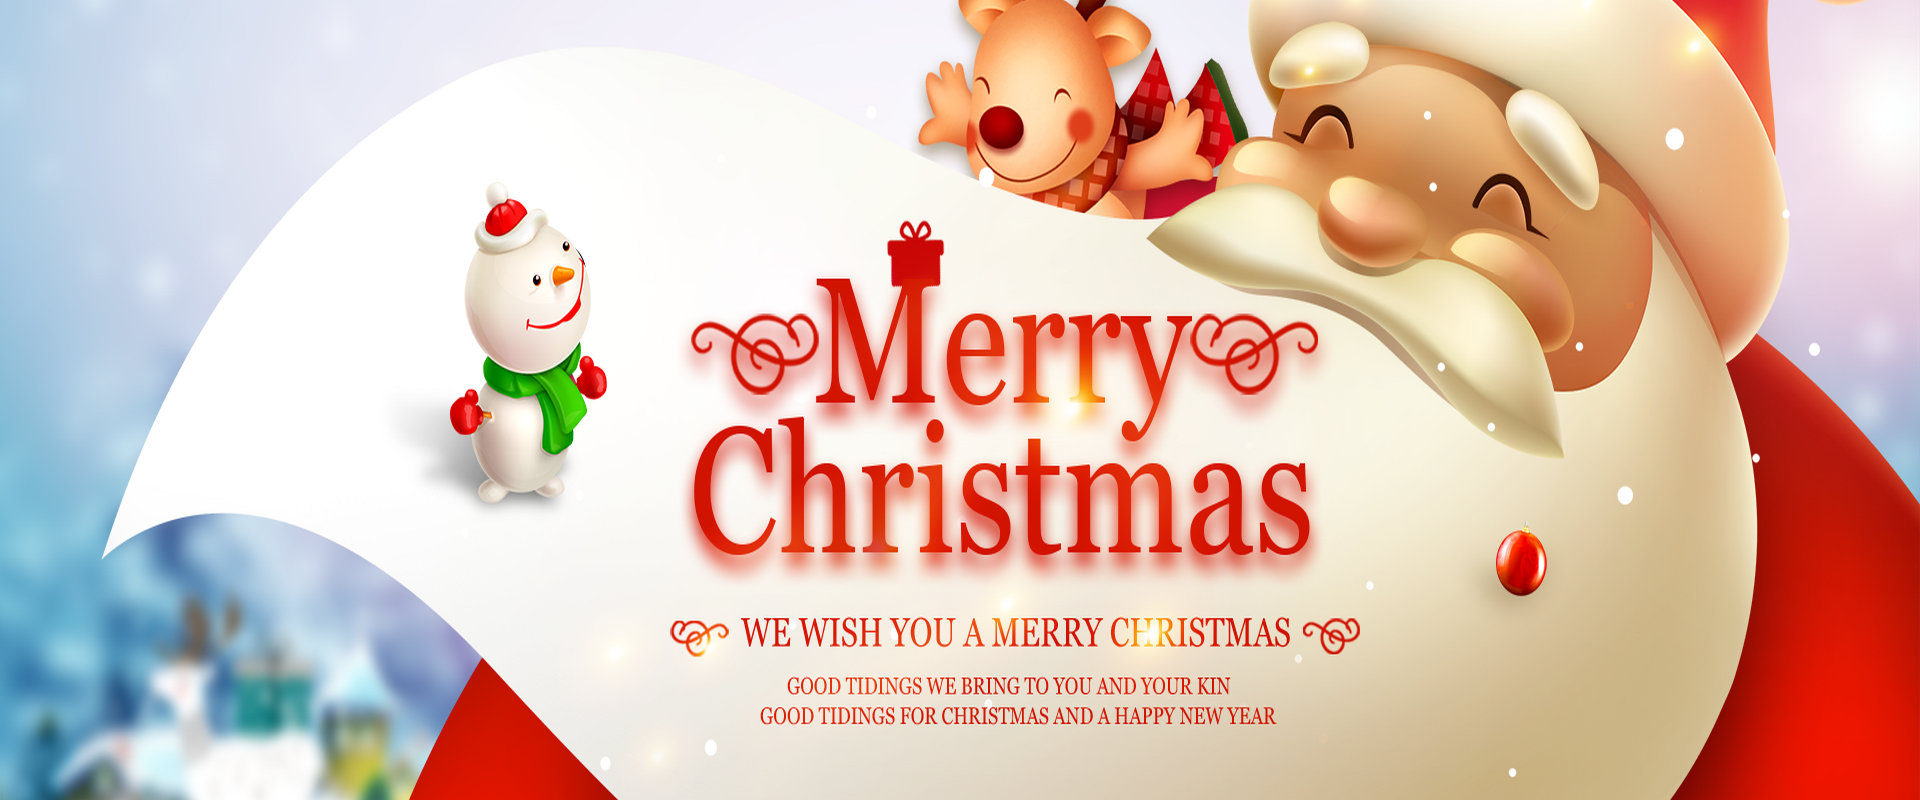 Tumtec wish you a Merry Christmas and Happy New Year